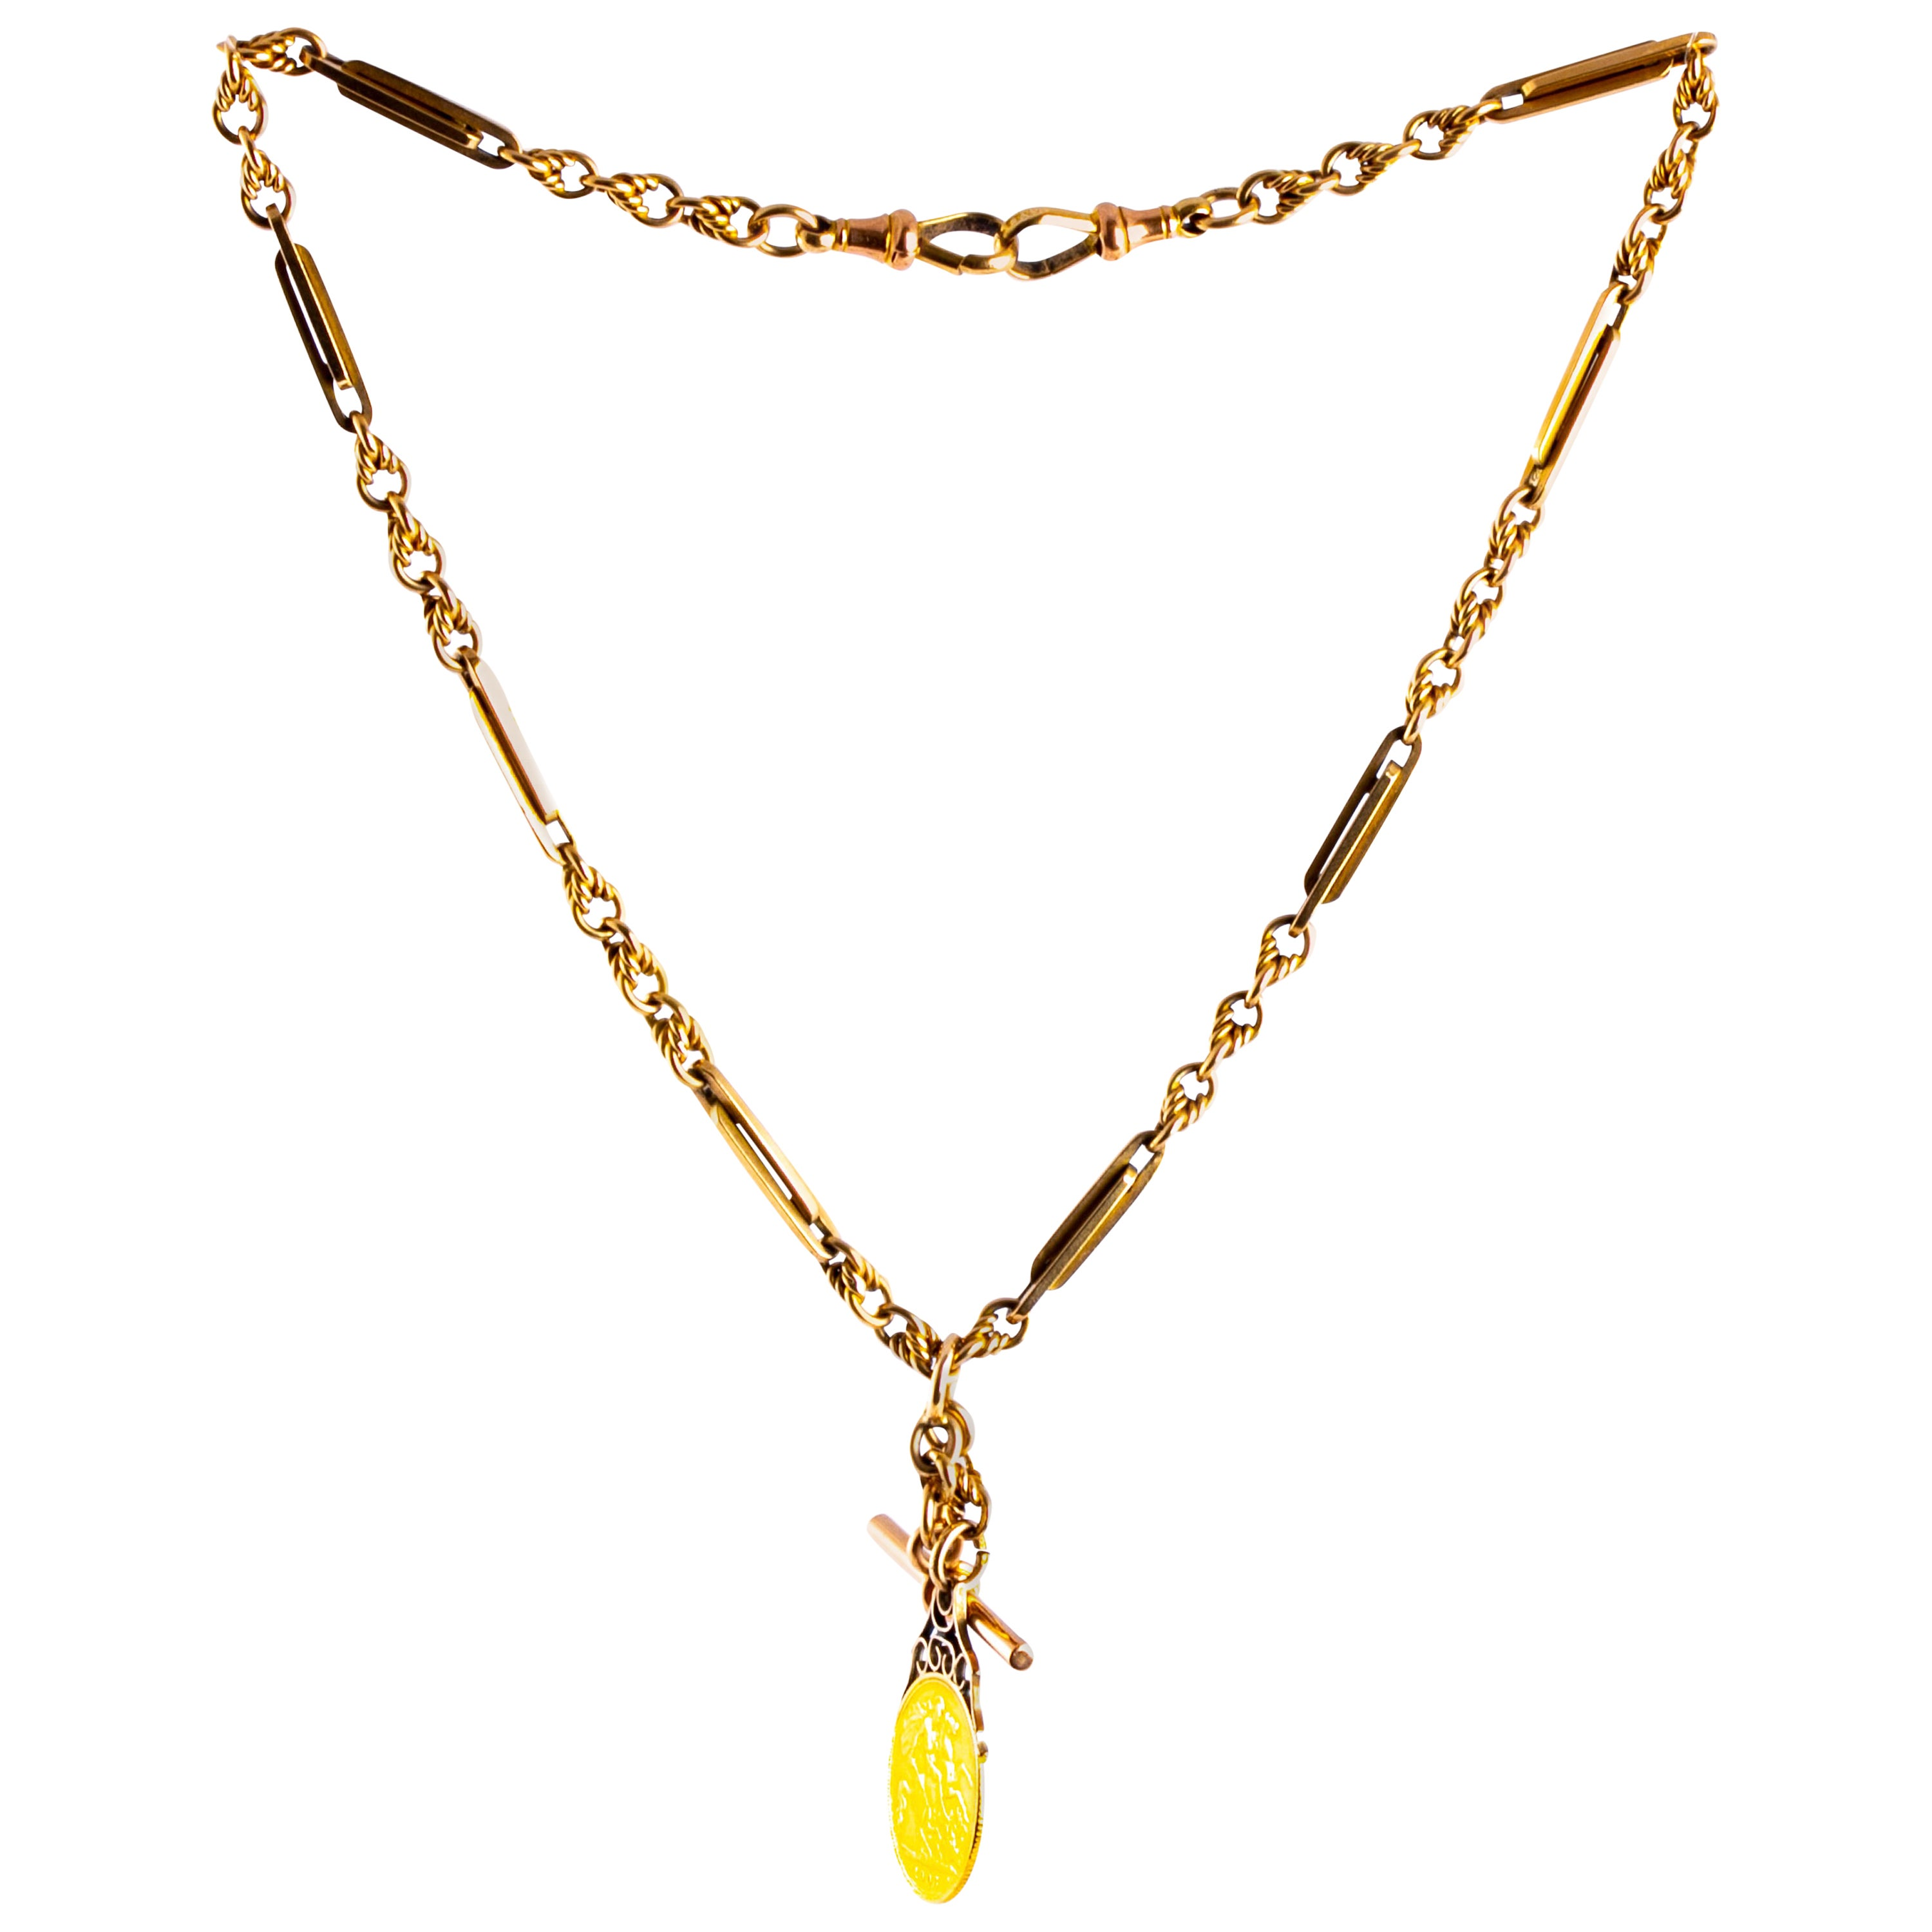 Edwardian 9 Carat Gold Albert or Necklace Chain with T-Bar and Sovereign